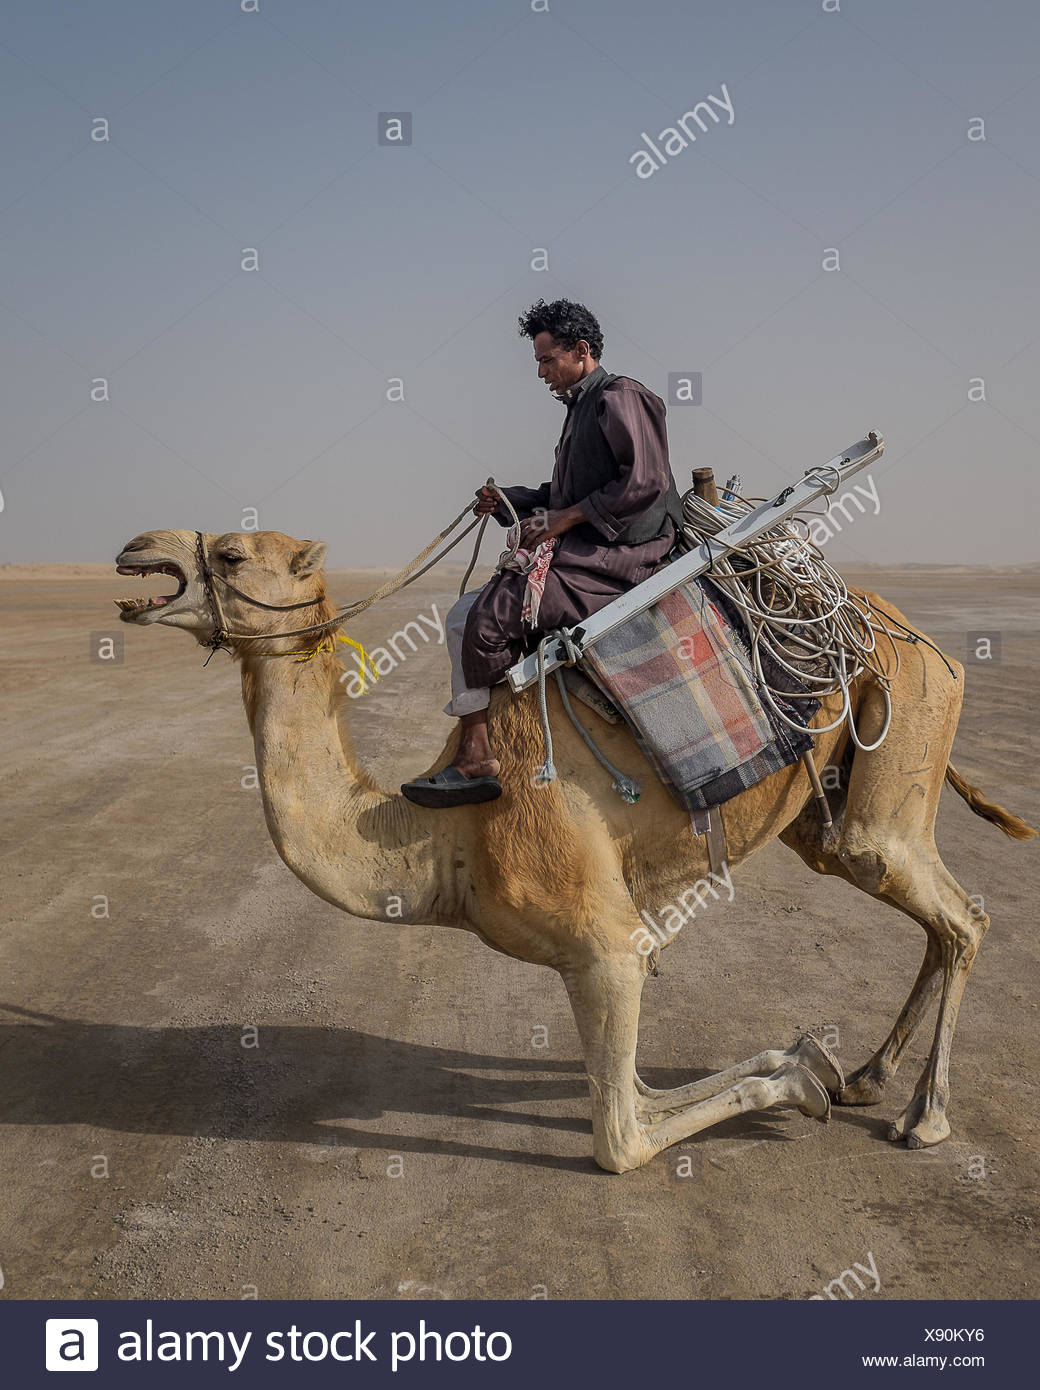 An electrical contractor uses a camel to make his way through the remote Inland Sea region of Qatar. - Stock Image